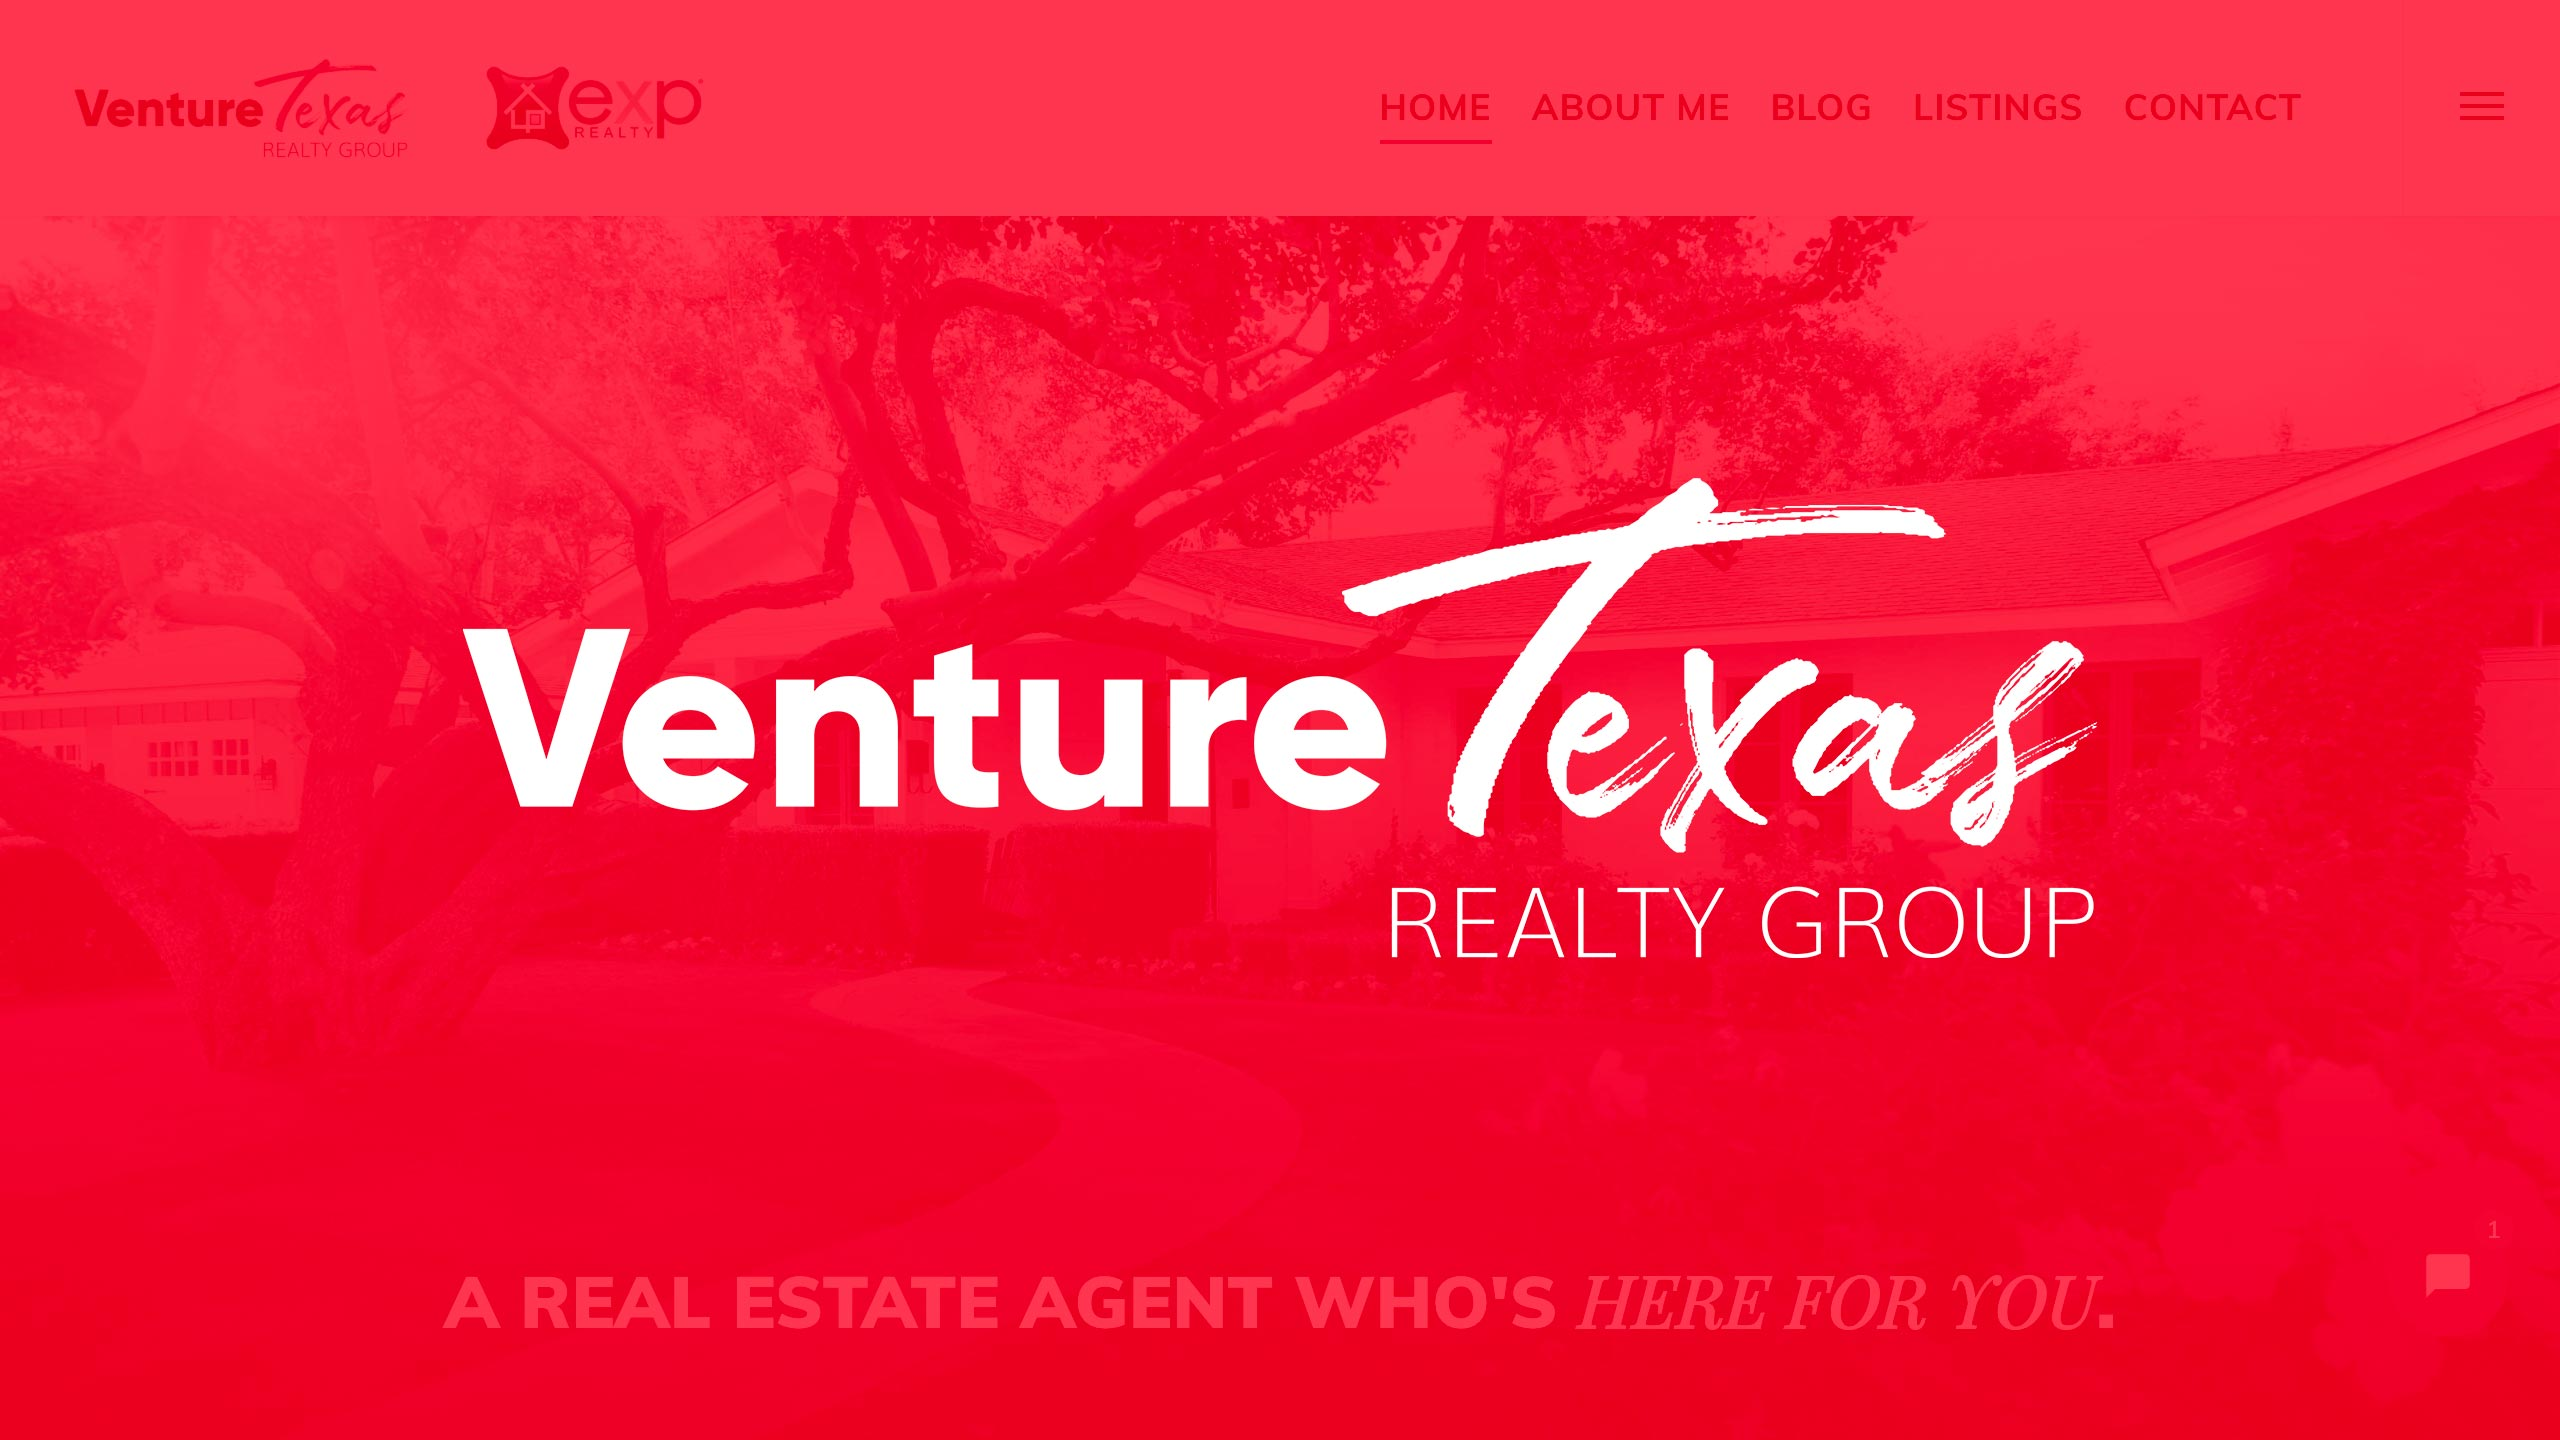 Venture Texas Realty Group